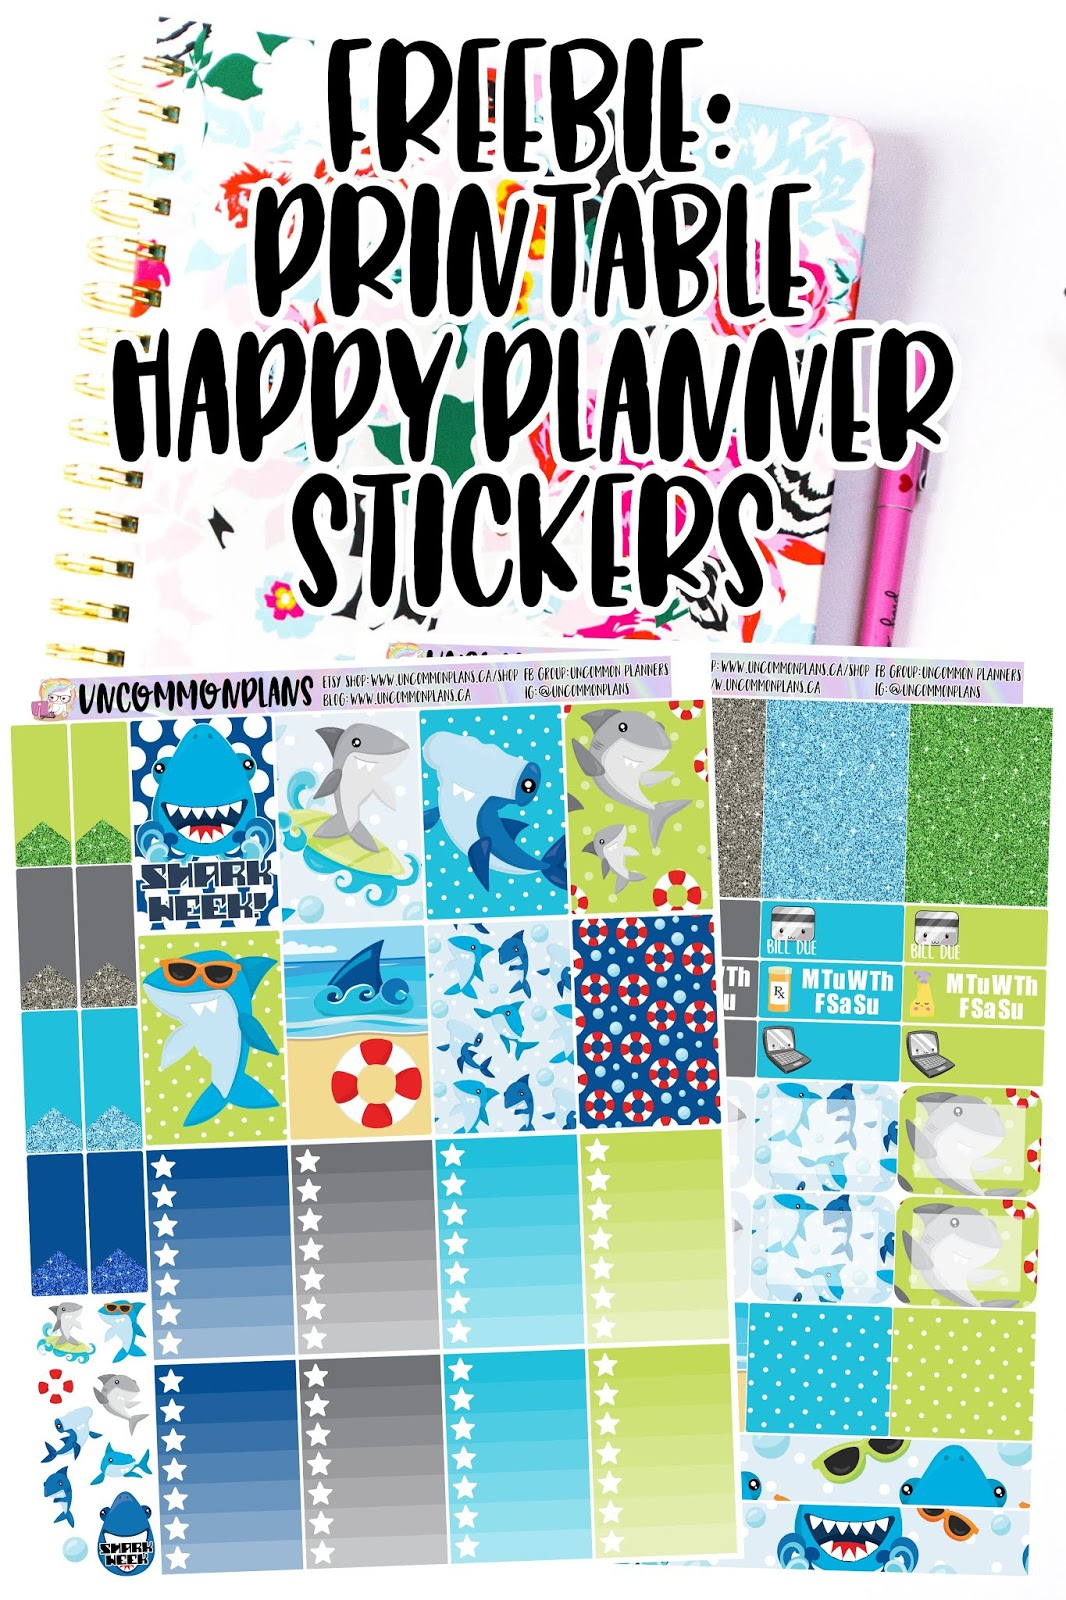 graphic about Free Printable Happy Planner Stickers identified as Strange Applications: FREEBIE: Shark 7 days Printable Planner